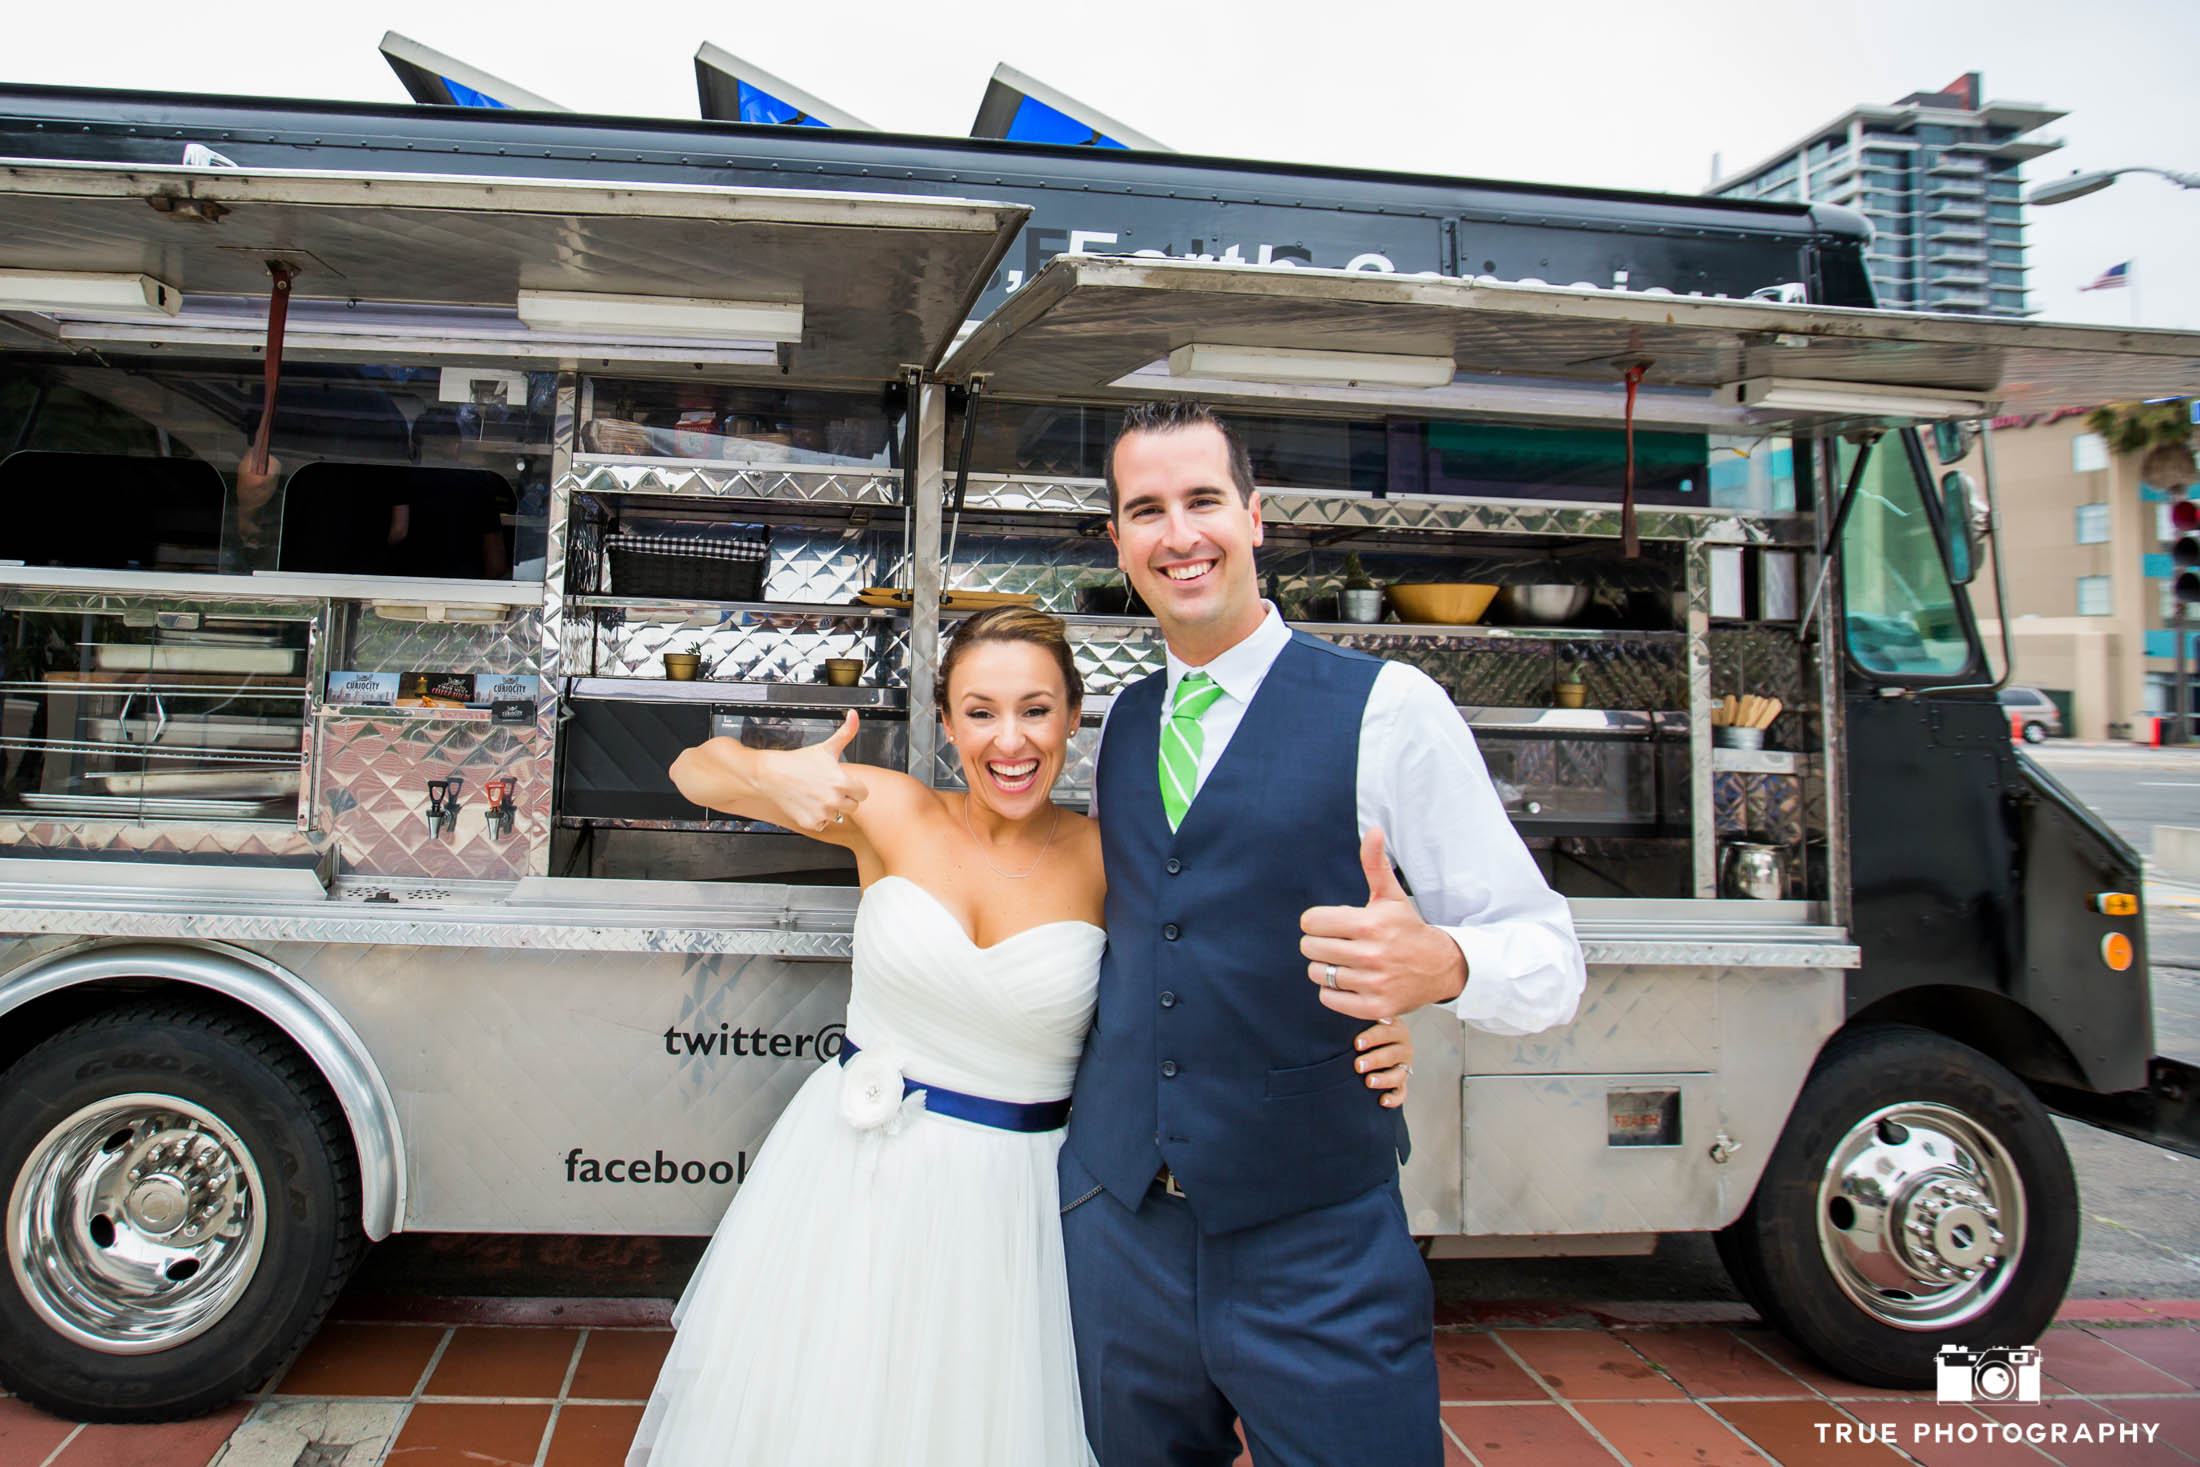 Happy food truck wedding couple